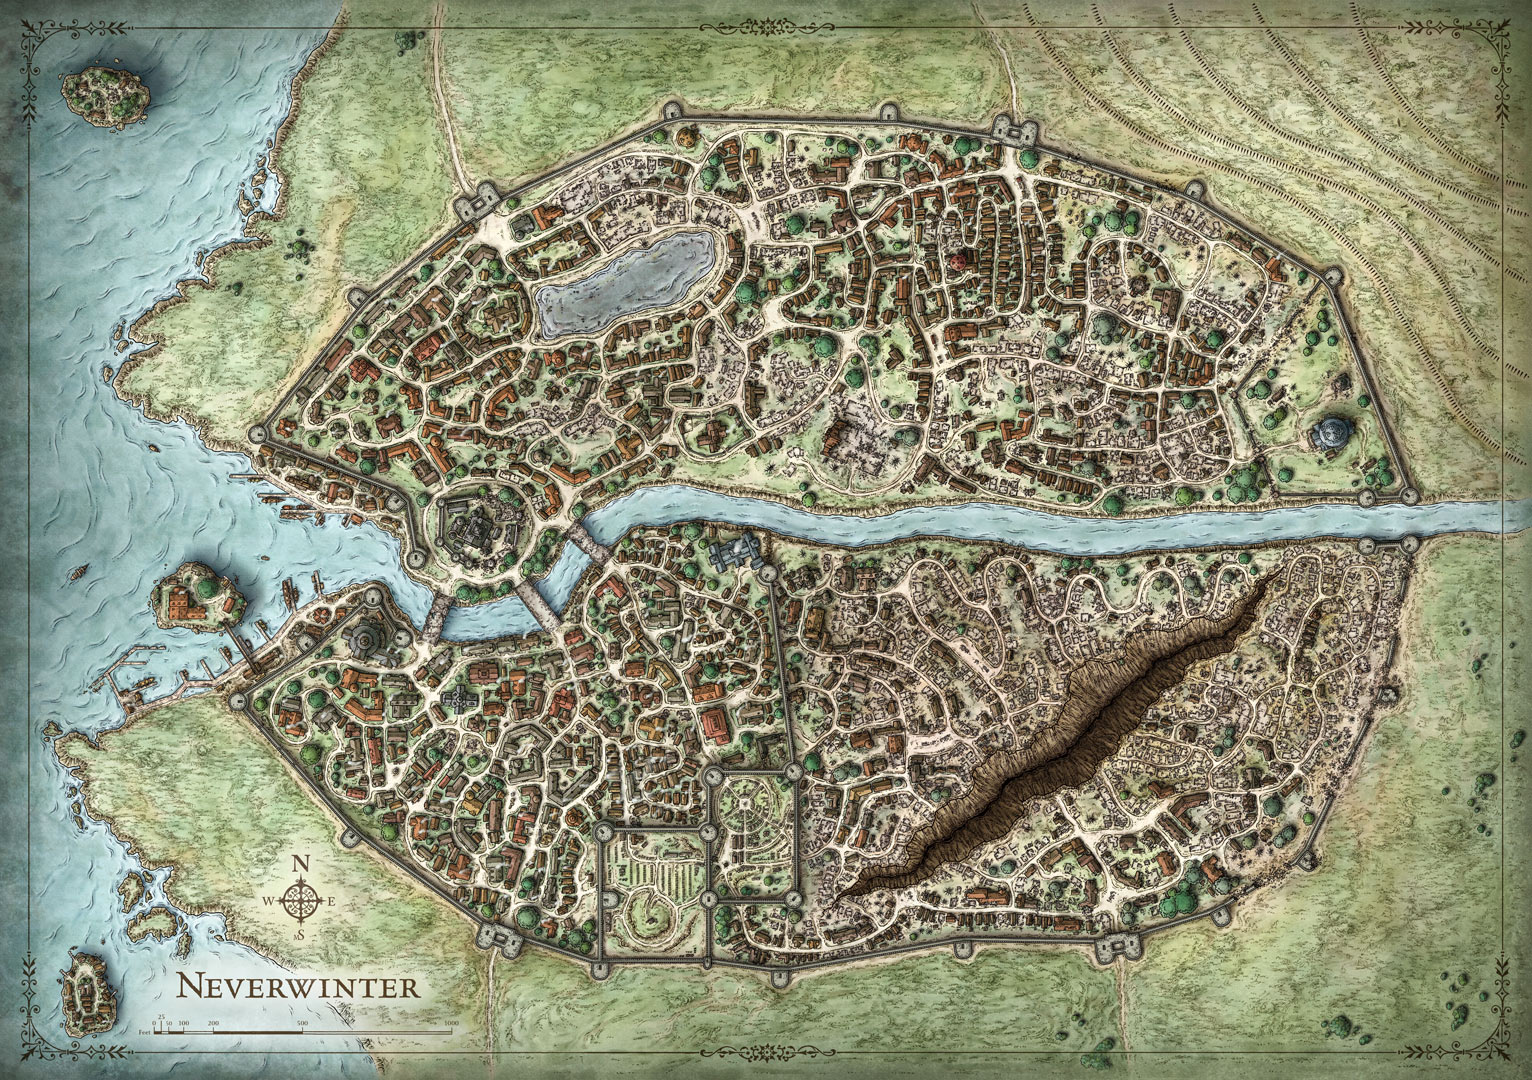 The D&D city, Neverwinter.